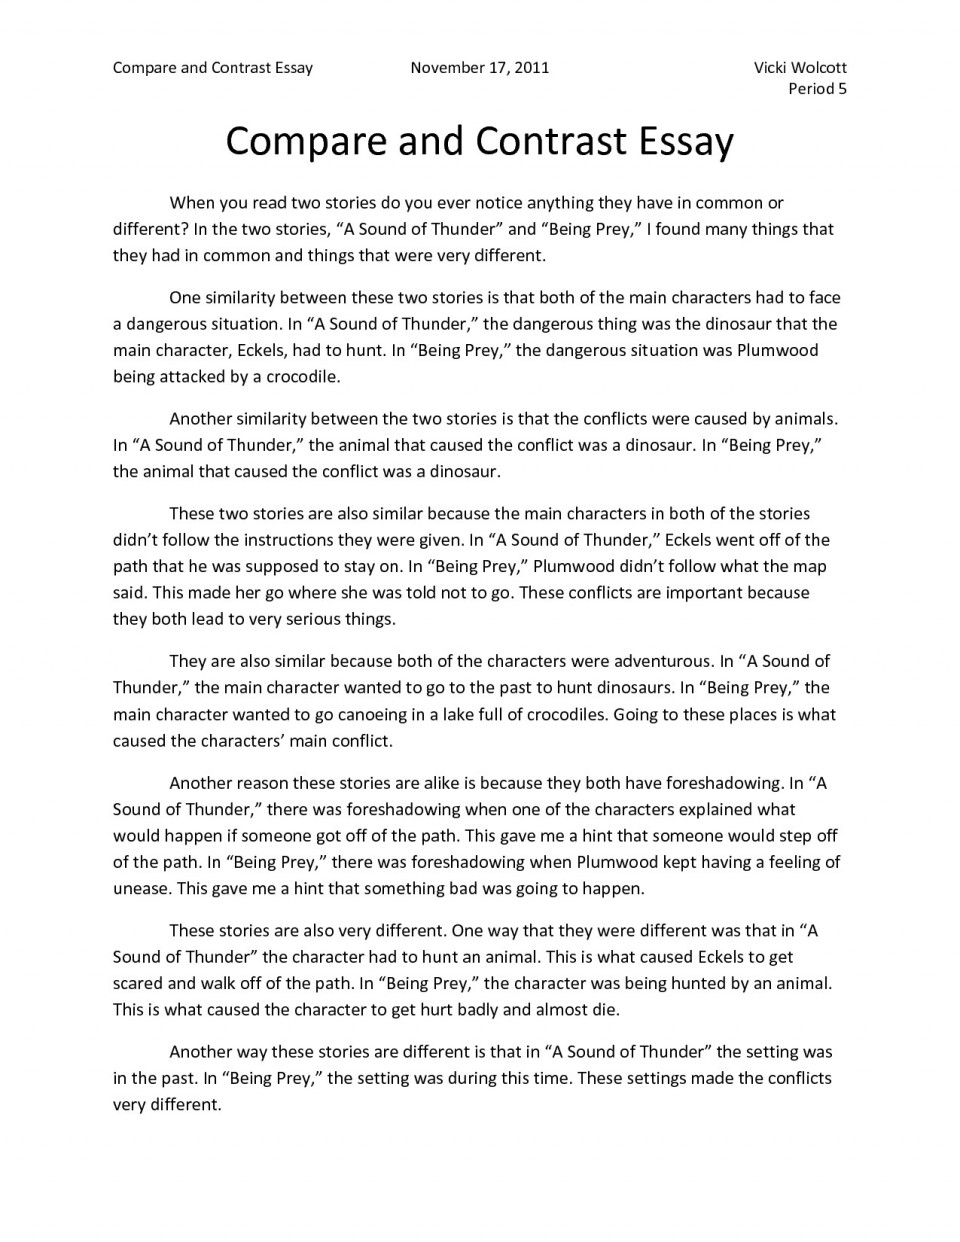 014 Comparingnd Contrasting Essay Example Satire Examples Of Comparison Contrast Essays Com How To Write Fascinating A An Introduction For Essay-example On Obesity 960